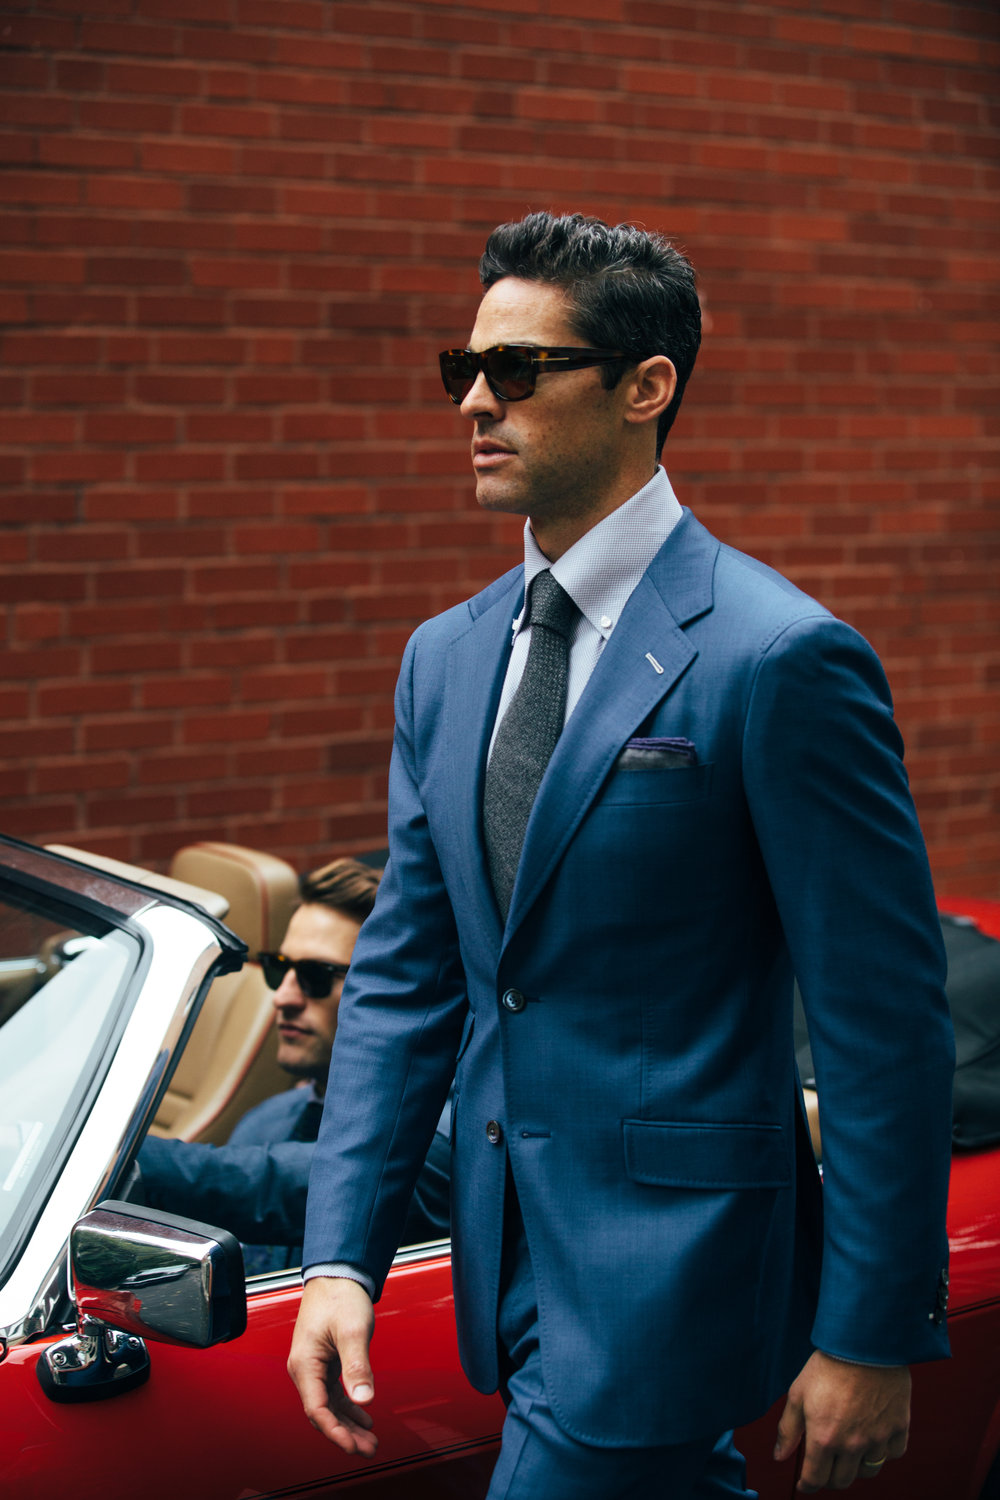 Daniel George custom suits Chicago